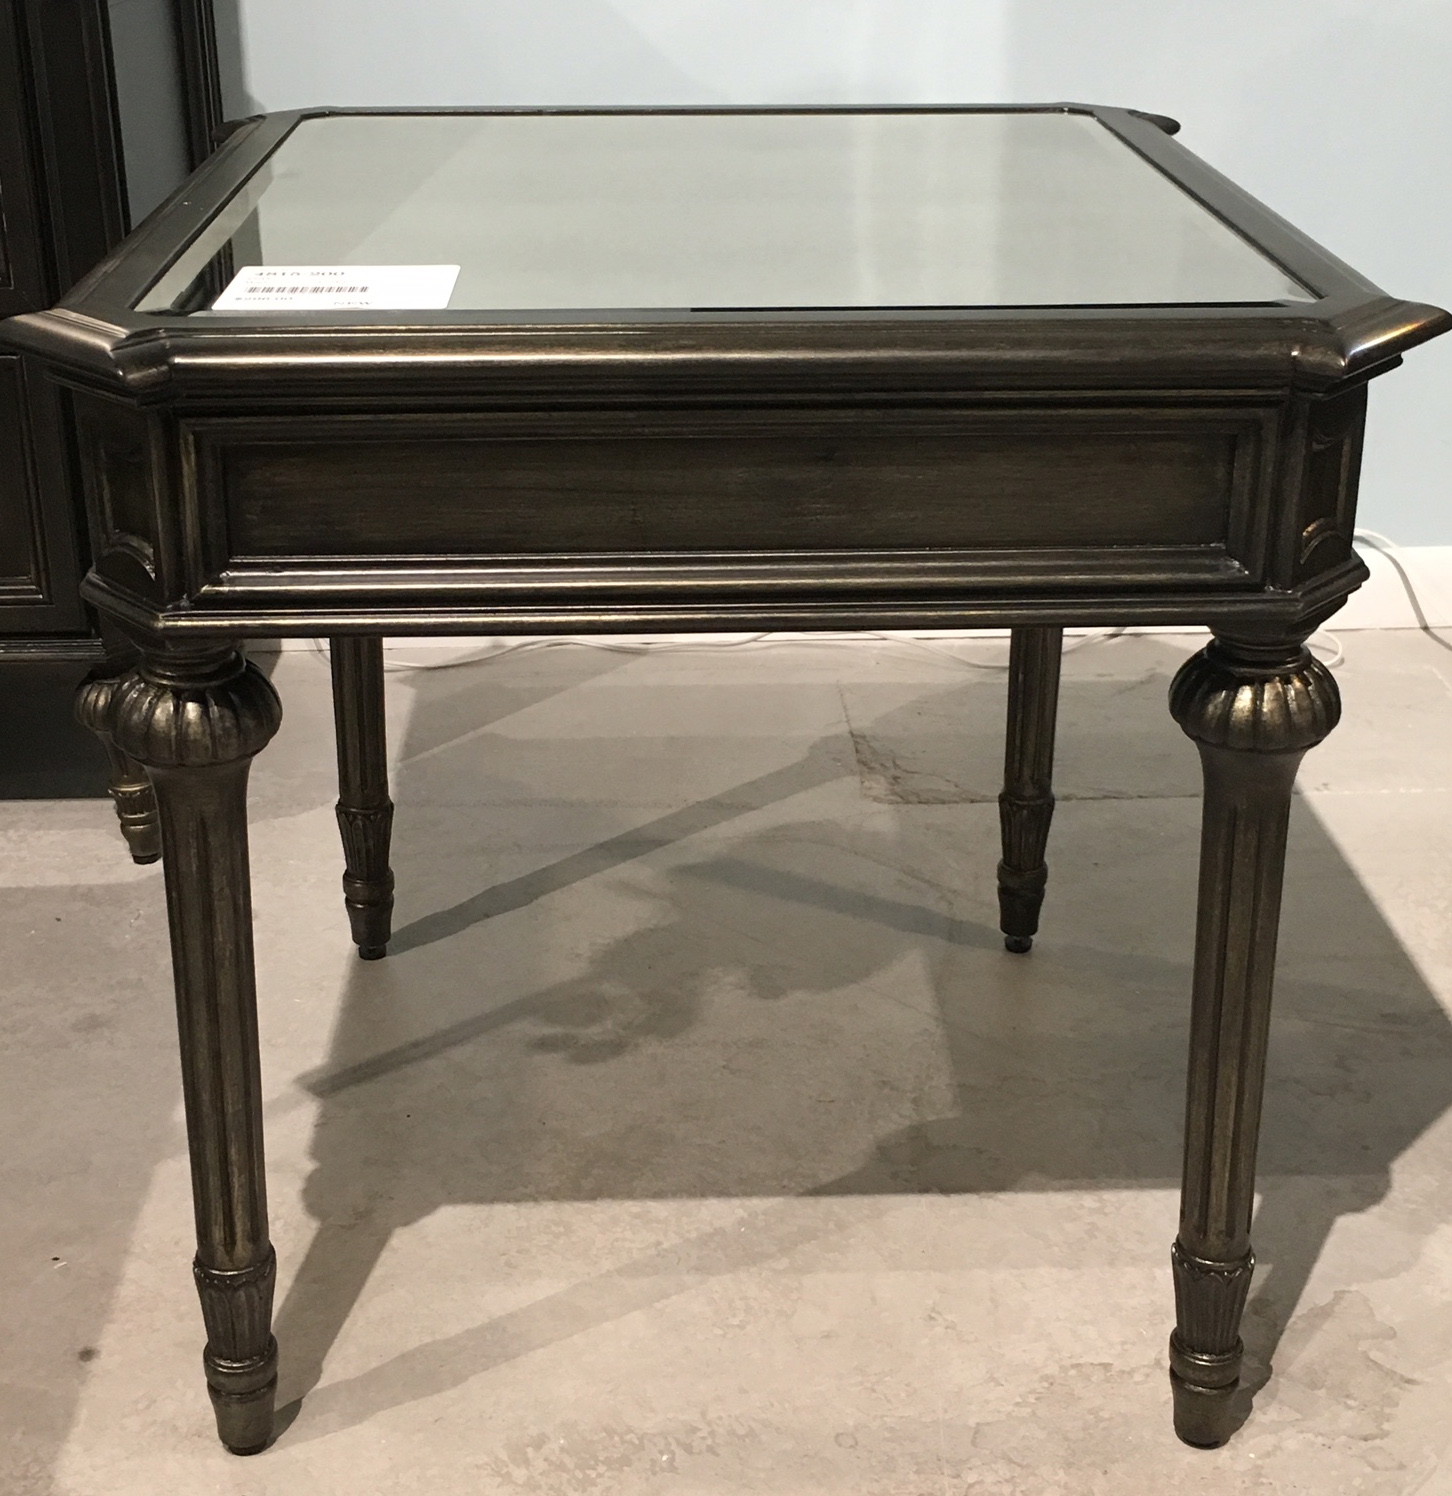 Home Accents Marseille Rectangle End Table by Bassett Mirror at Alison Craig Home Furnishings